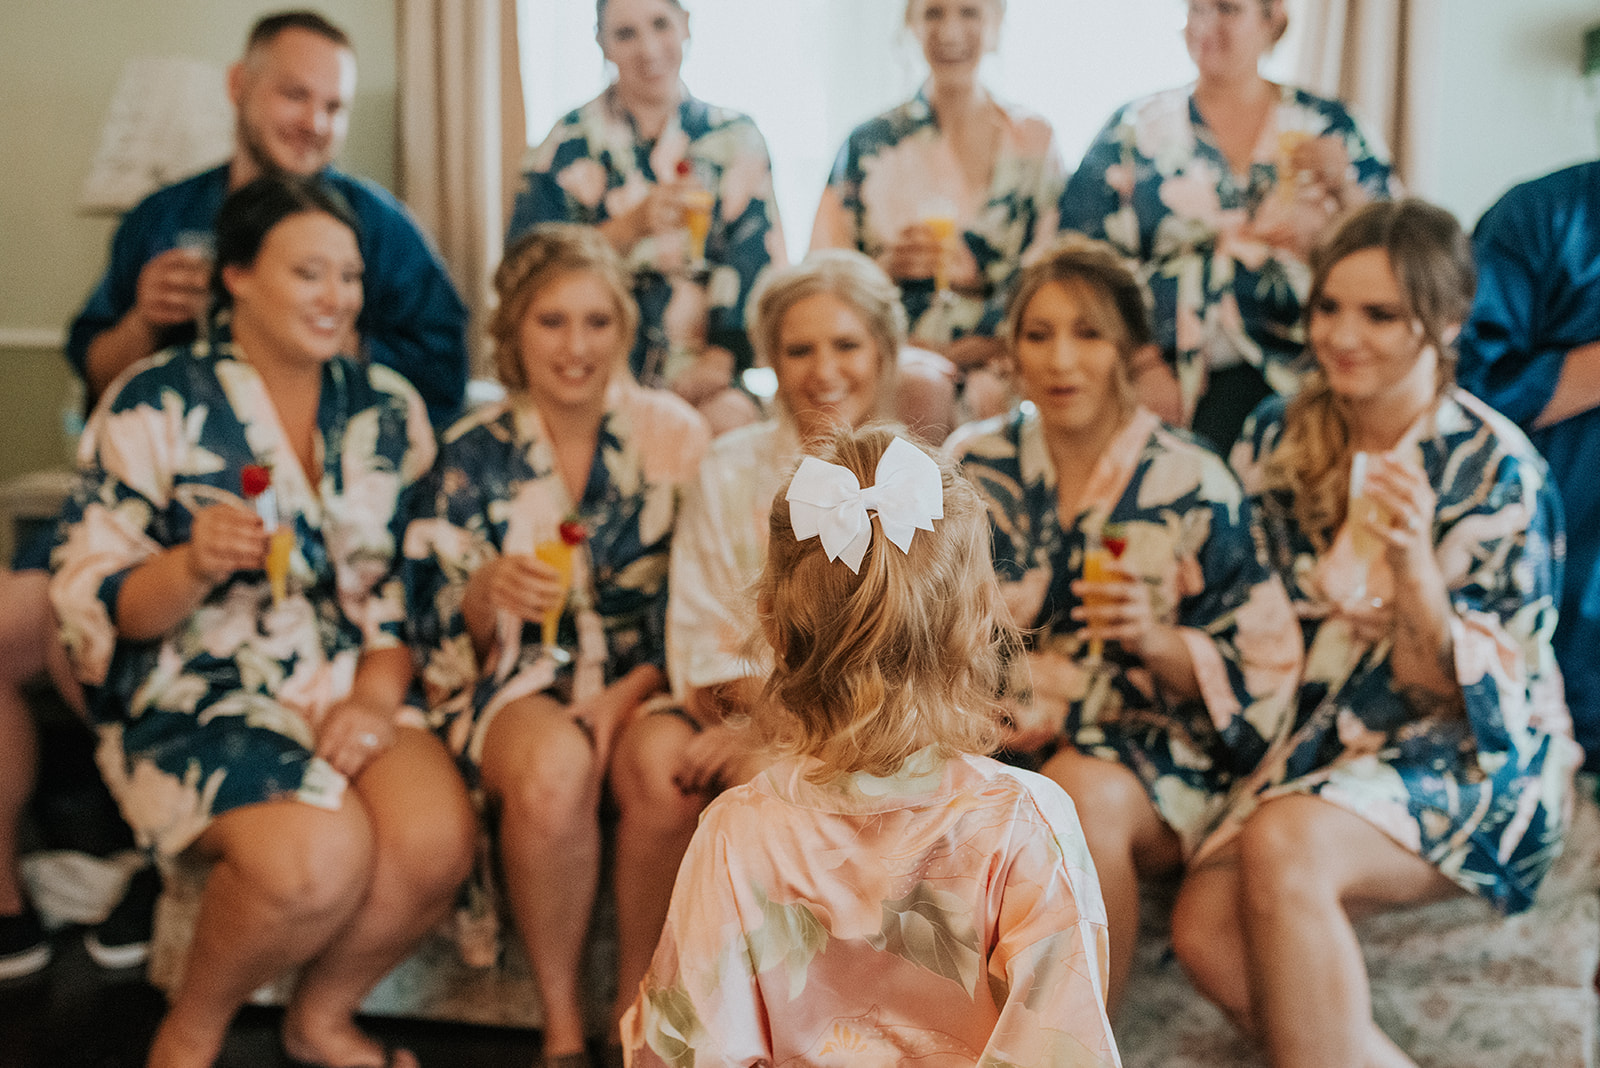 overthevineswisconsinwedding_0159.jpg